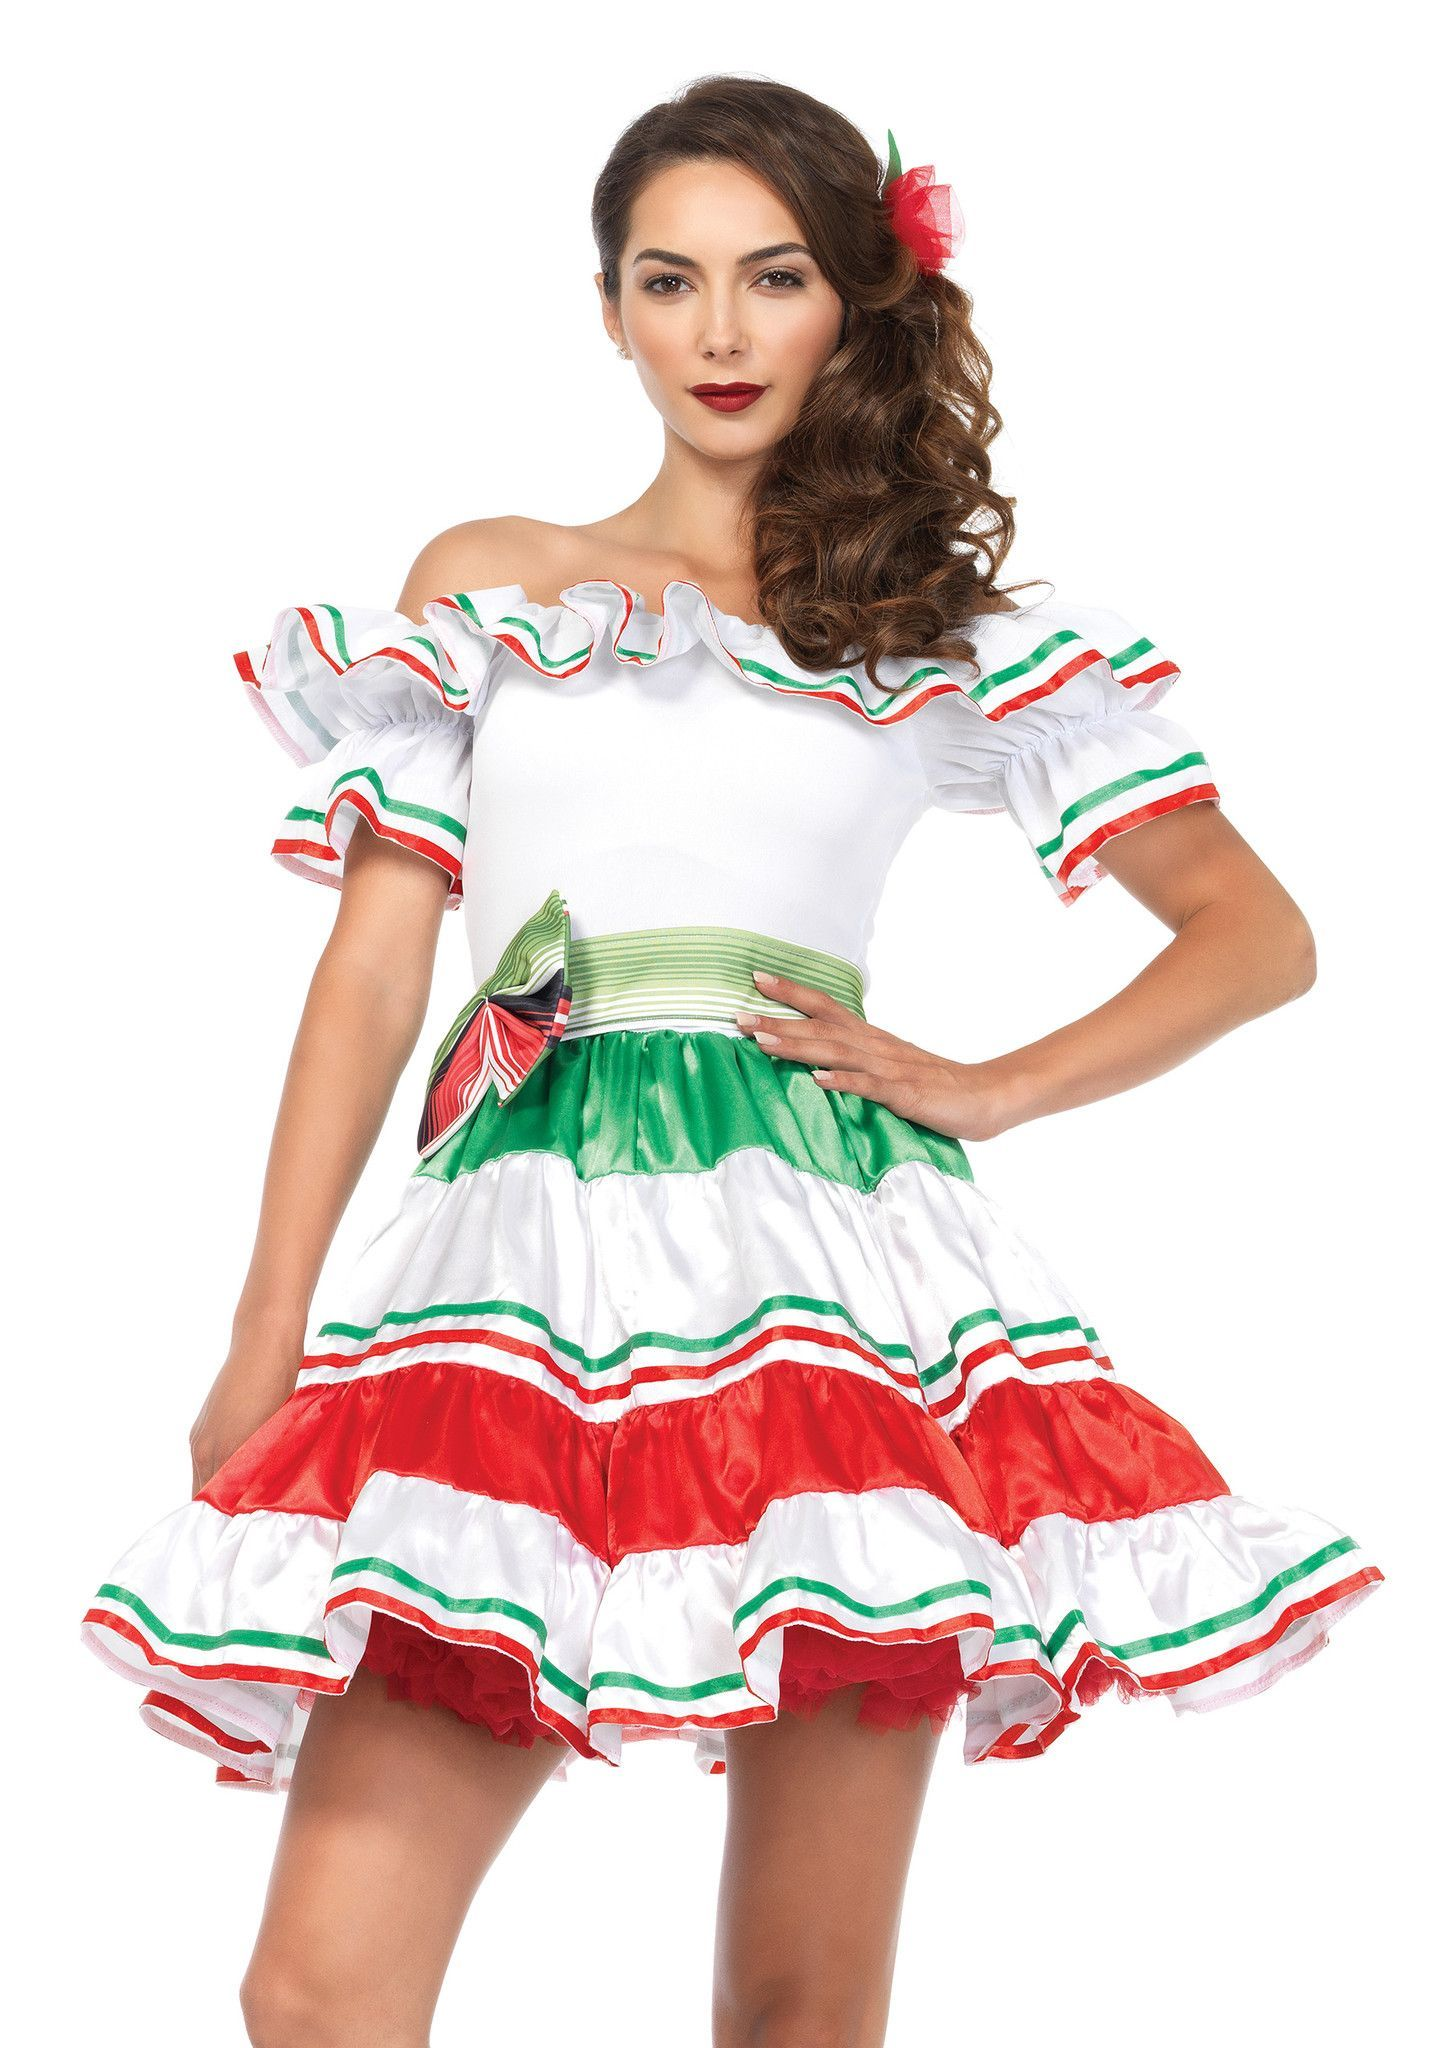 72a5d915d9863 Want to look caliente (hot) this Halloween? This costume is the one for you…